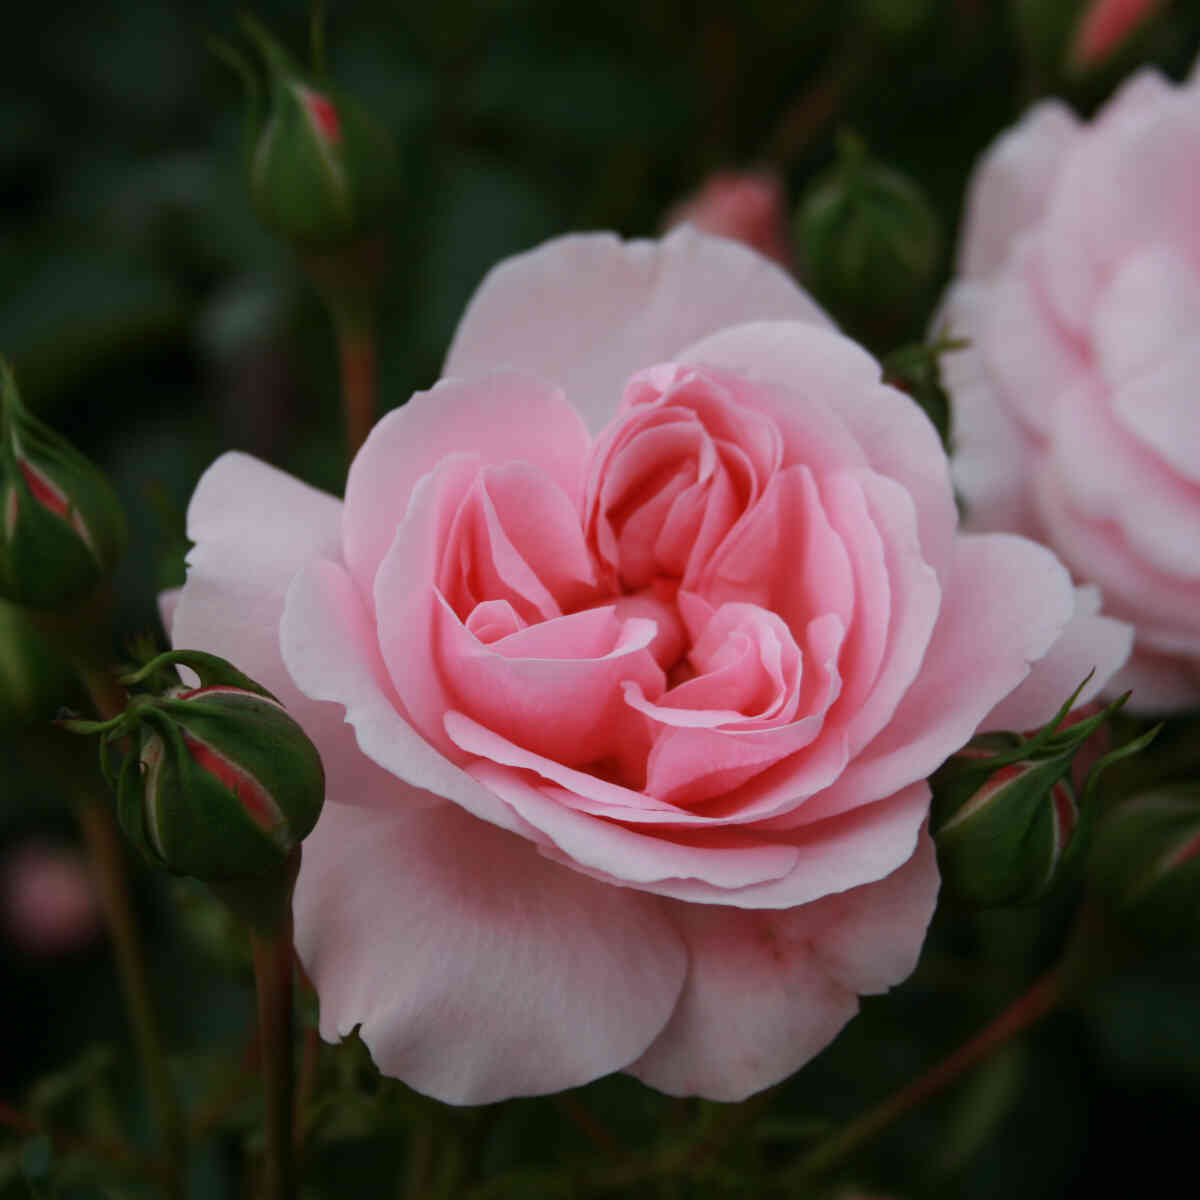 Rose 'Home and Garden'